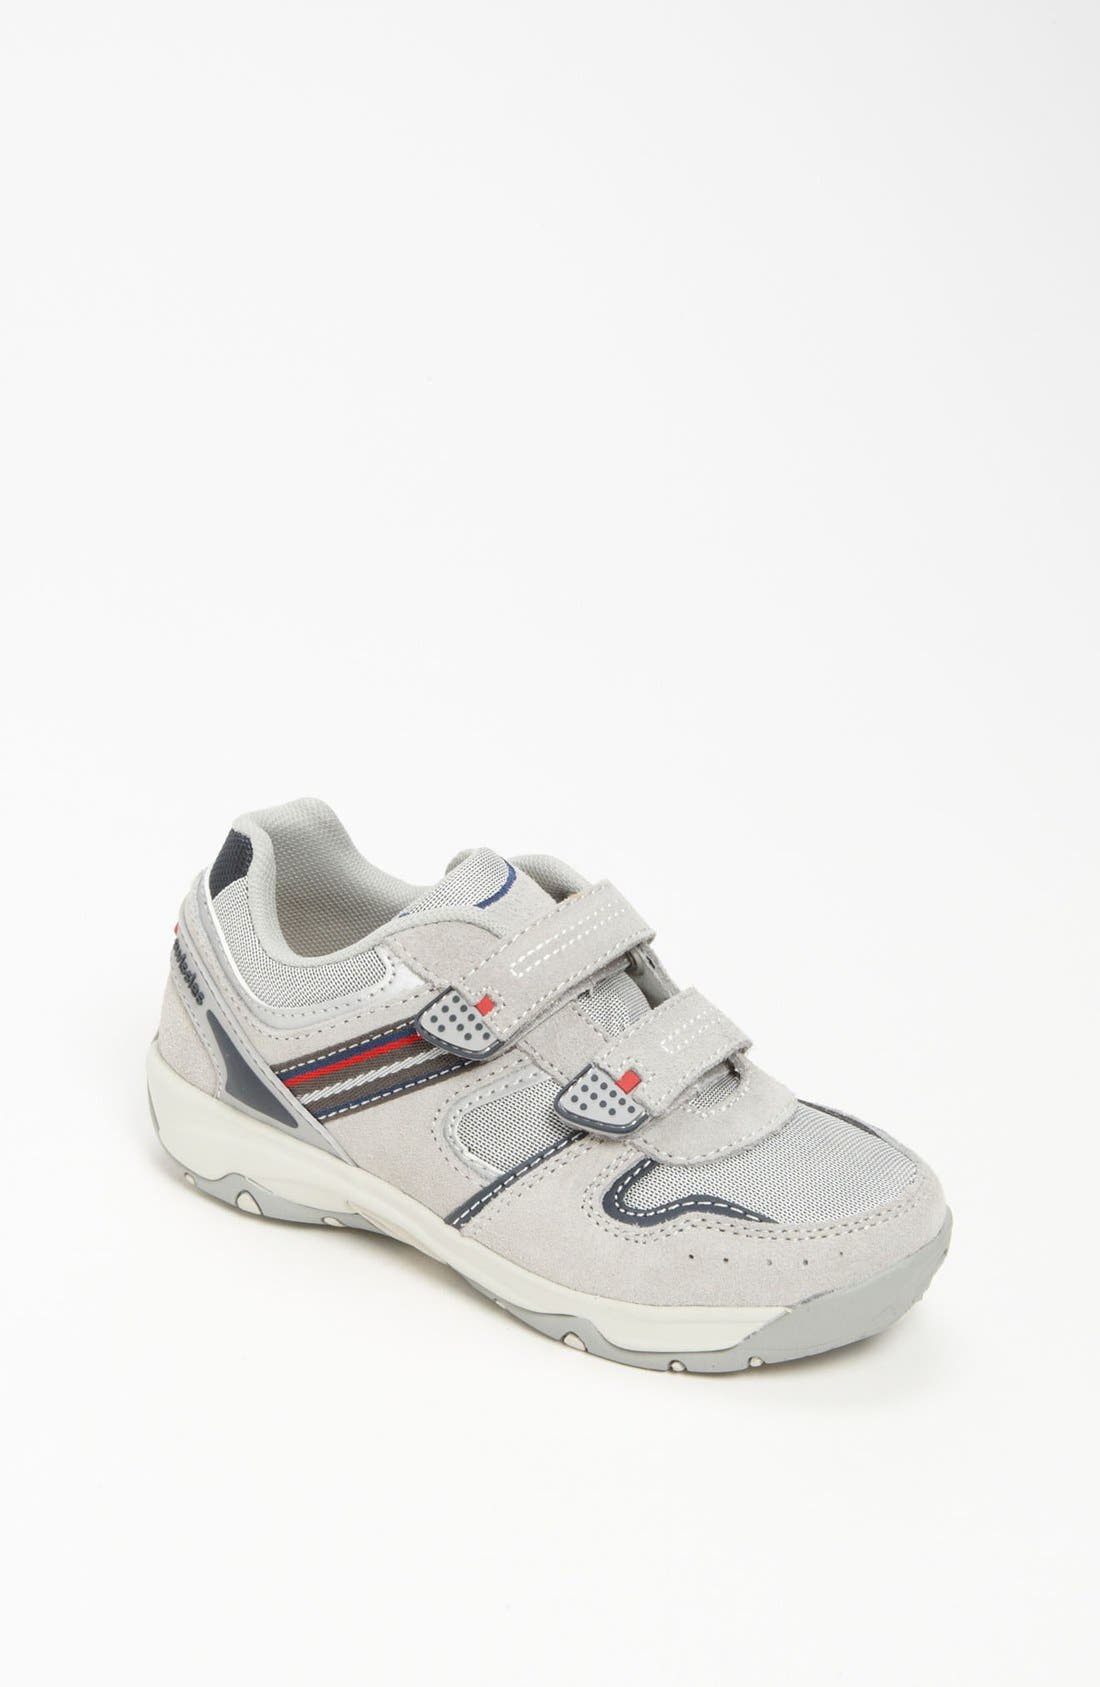 Main Image - Swissies 'Terry' Sneaker (Toddler & Little Kid)